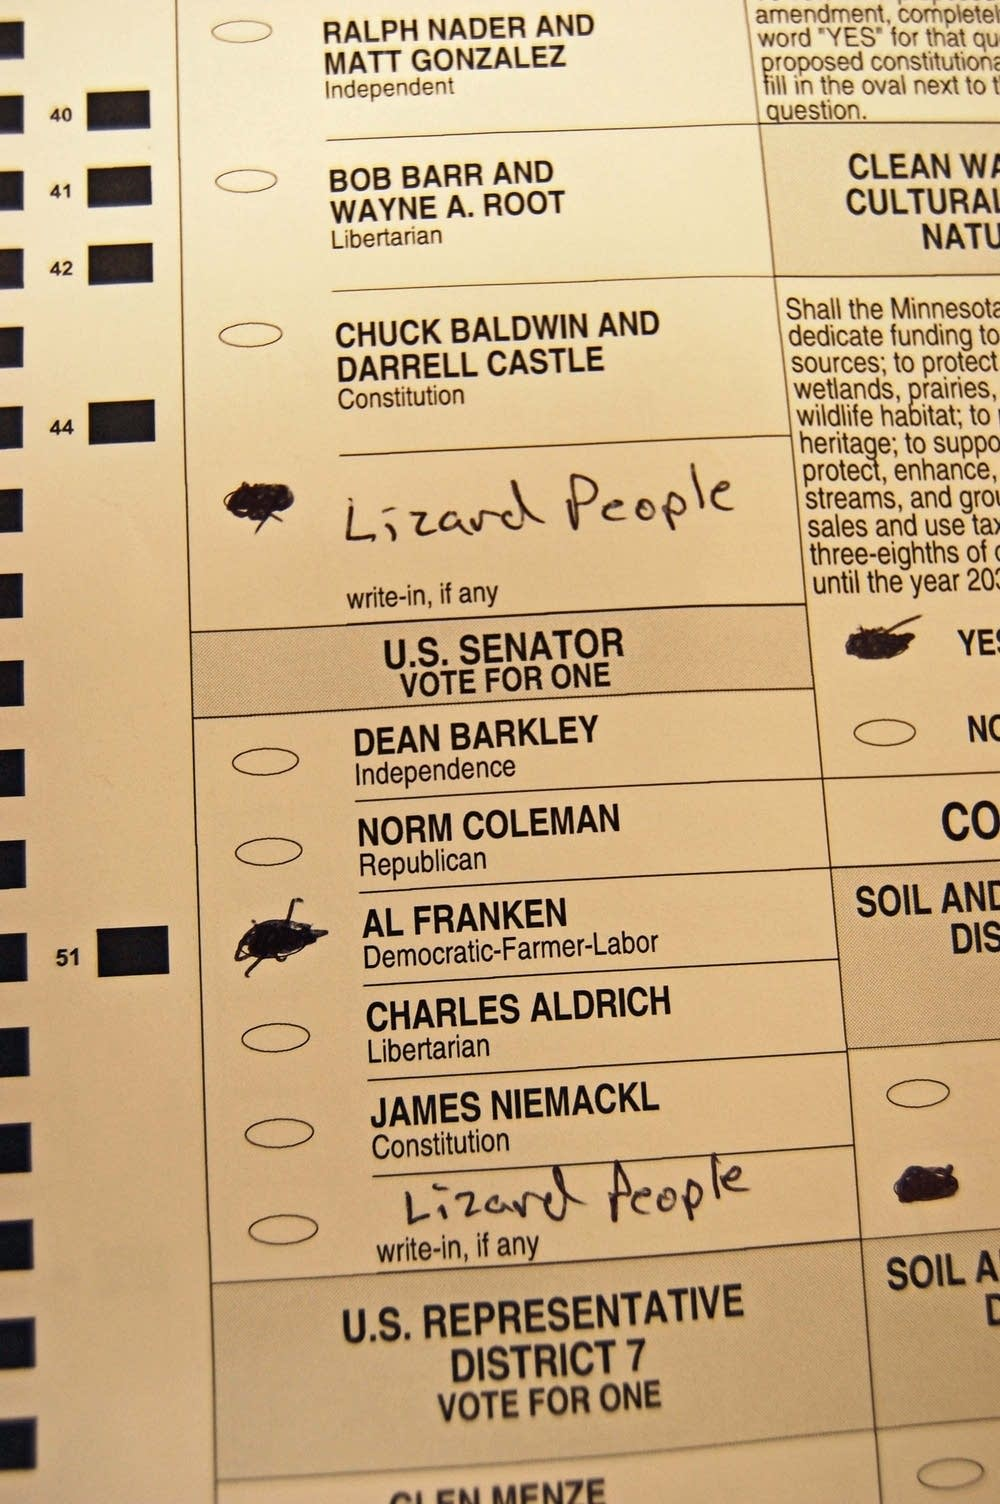 The Lizard People ballot